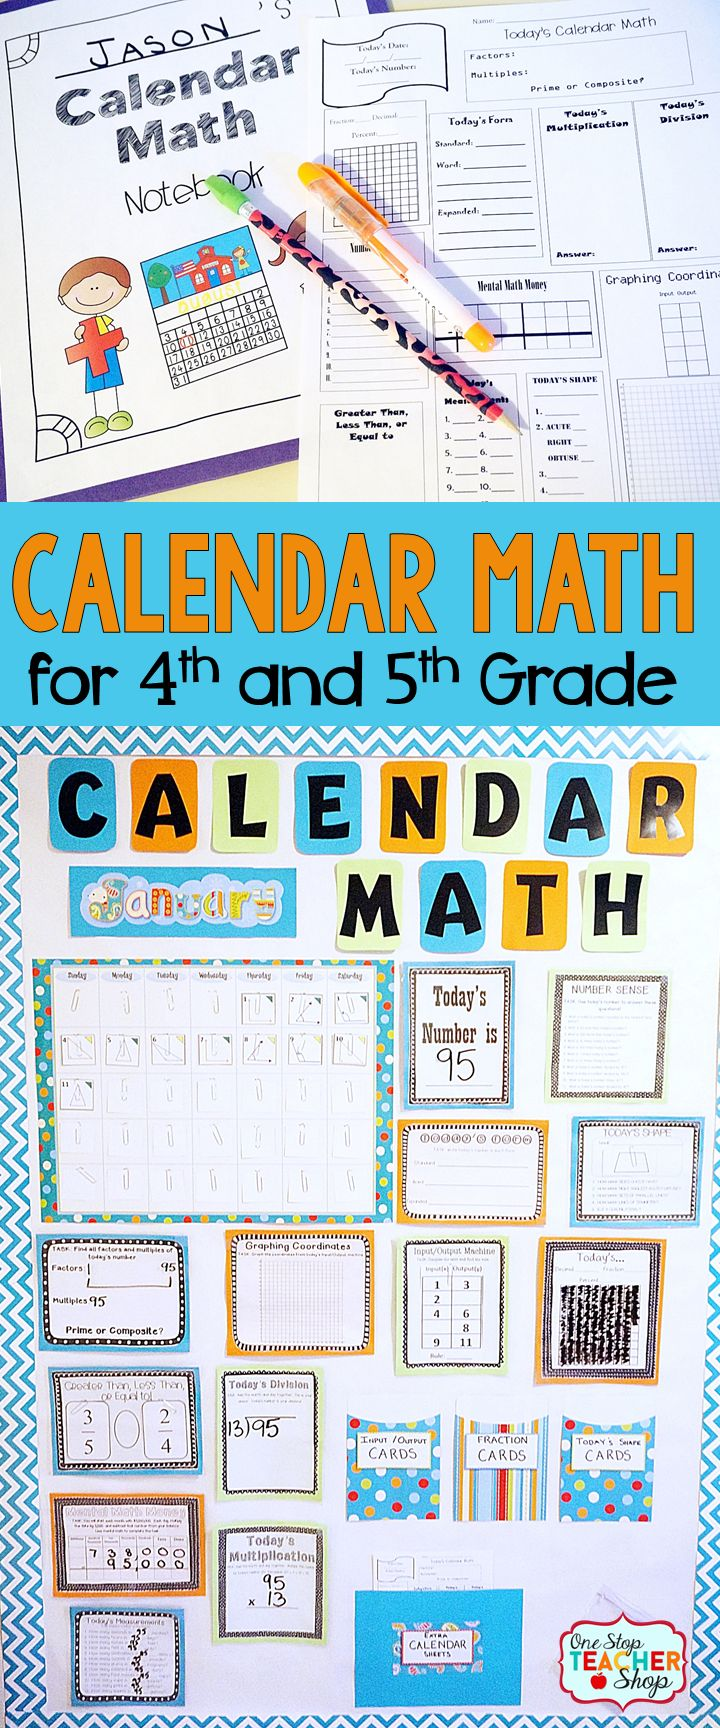 Calendar Ideas For Elementary : Best ideas about kindergarten calendar math on